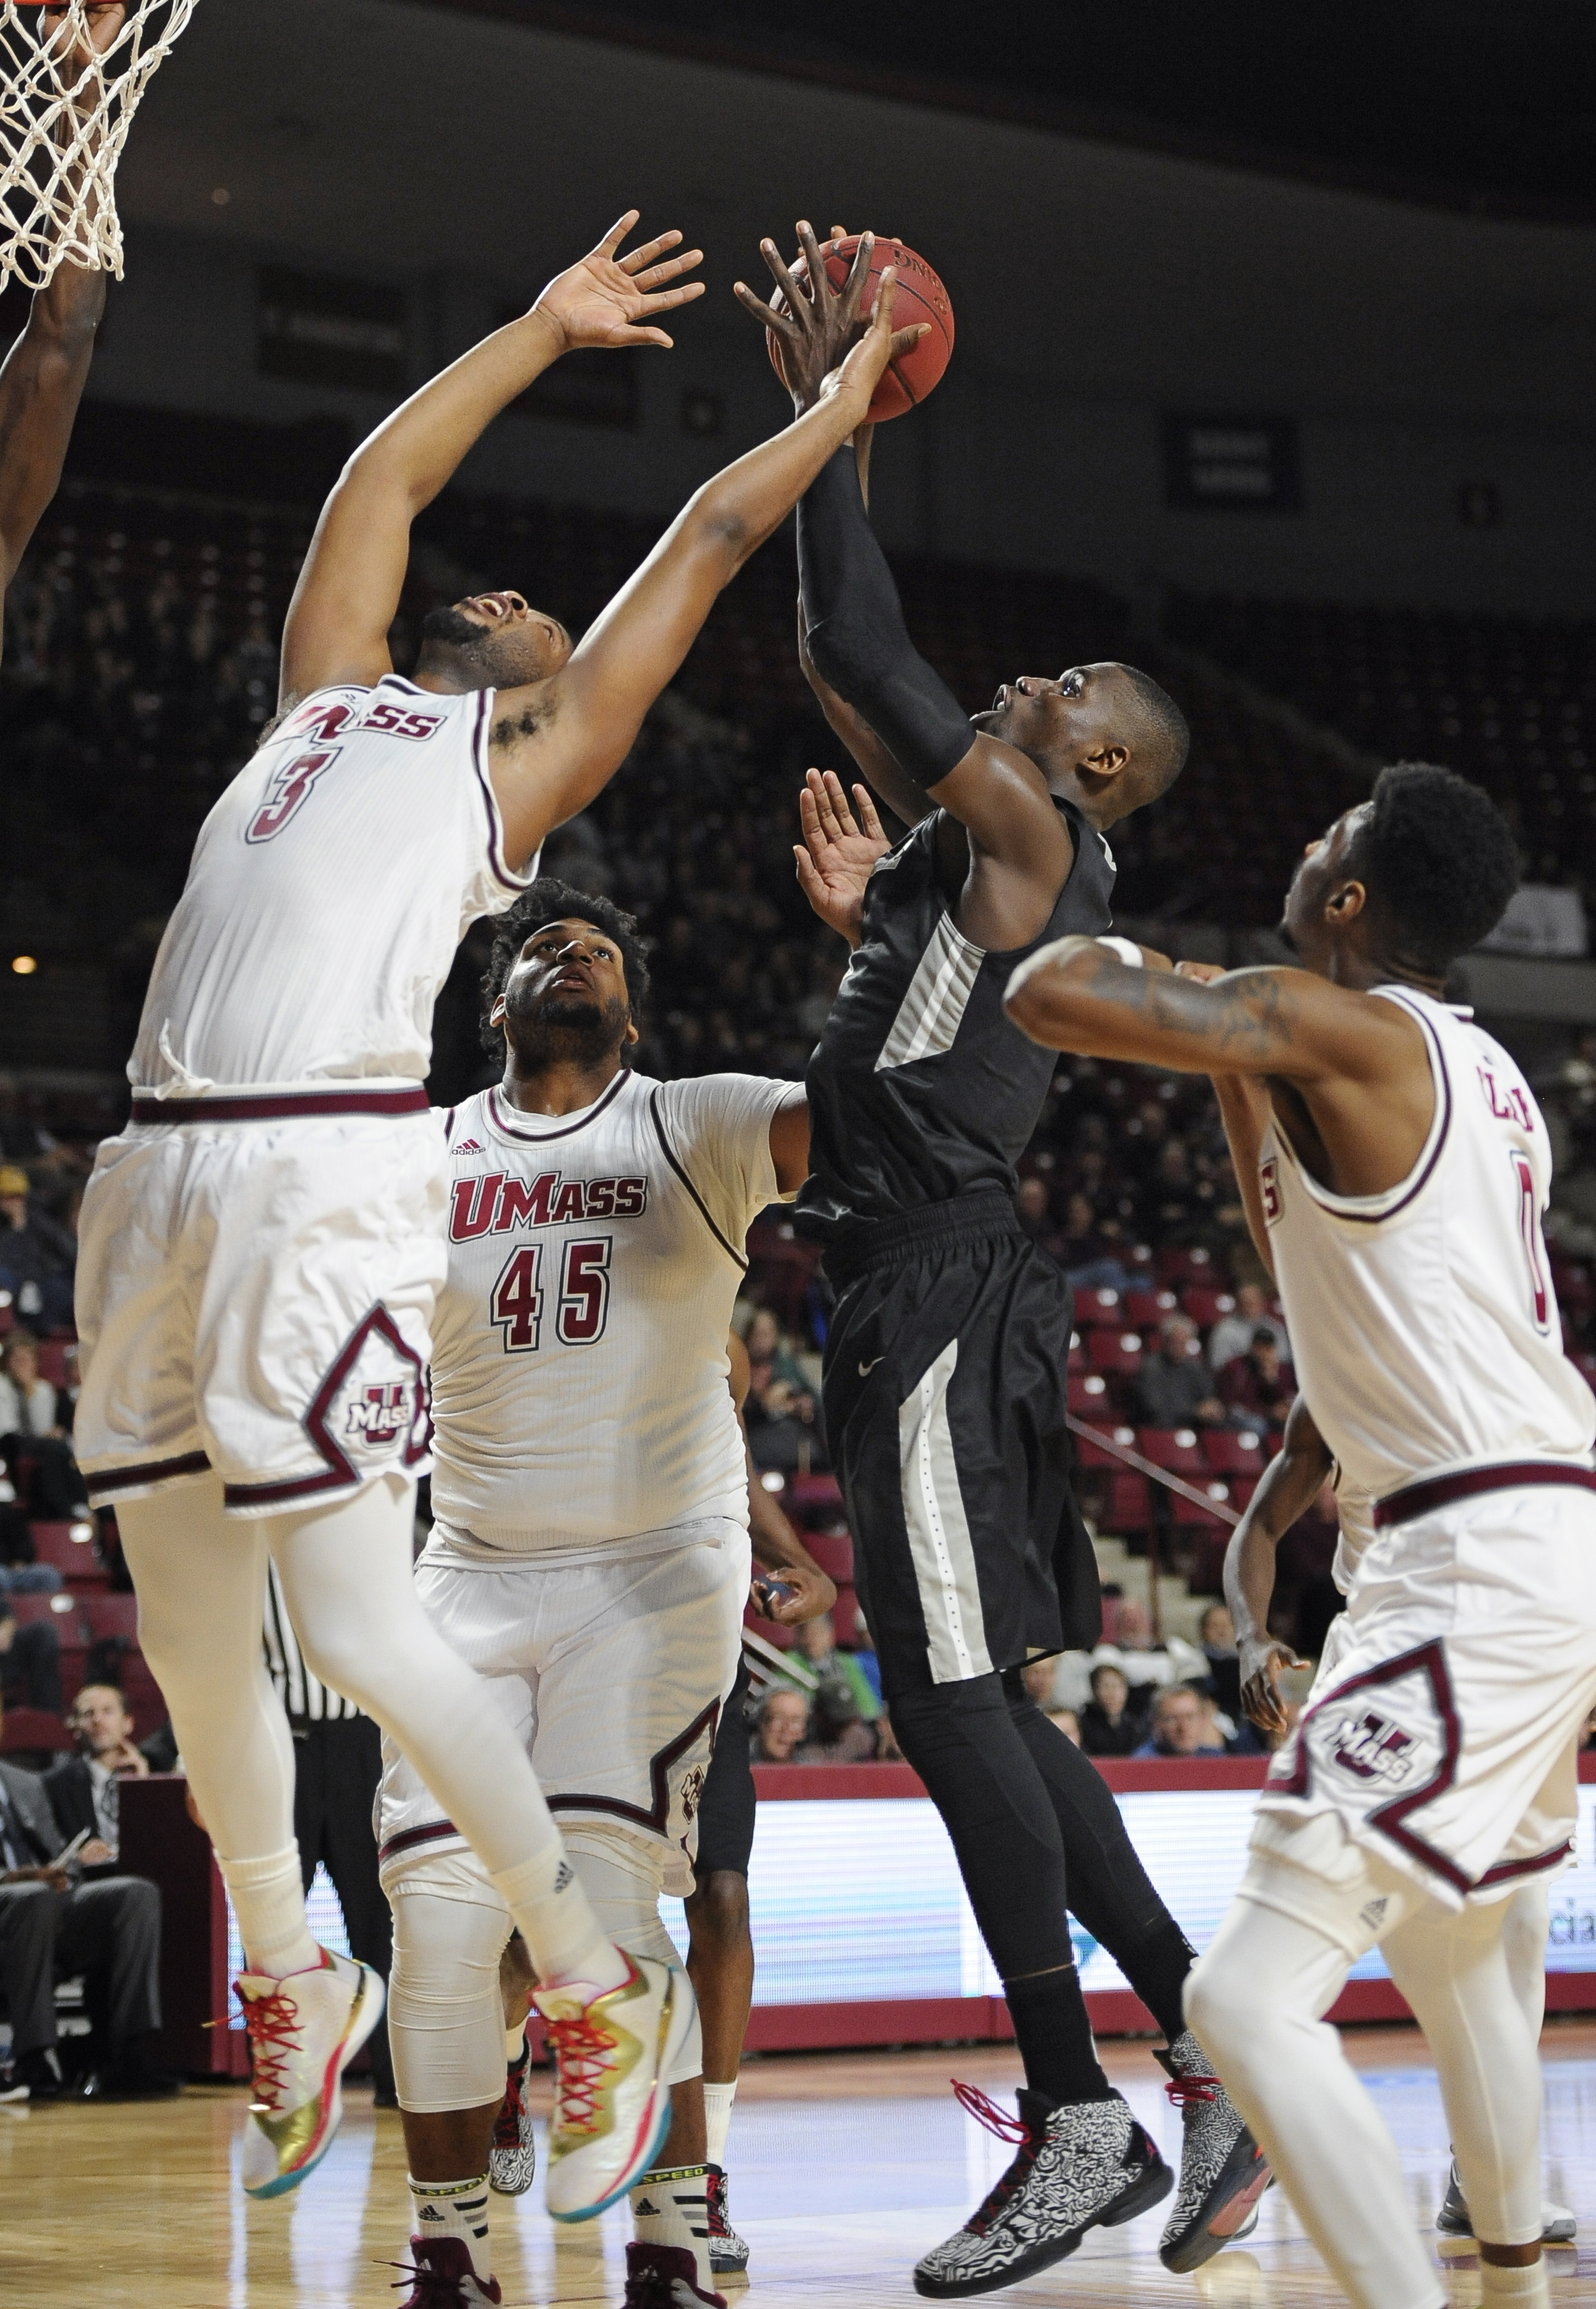 Providence's Ben Bentil, center shoots past Massachusetts' Jabarie Hinds, left, Rashaan Holloway, center, and Donte Clark, right, in the second half of an NCAA college basketball game, Monday, Dec. 21, 2015, in Amherst, Mass. Providence won 90-66.  (AP Ph